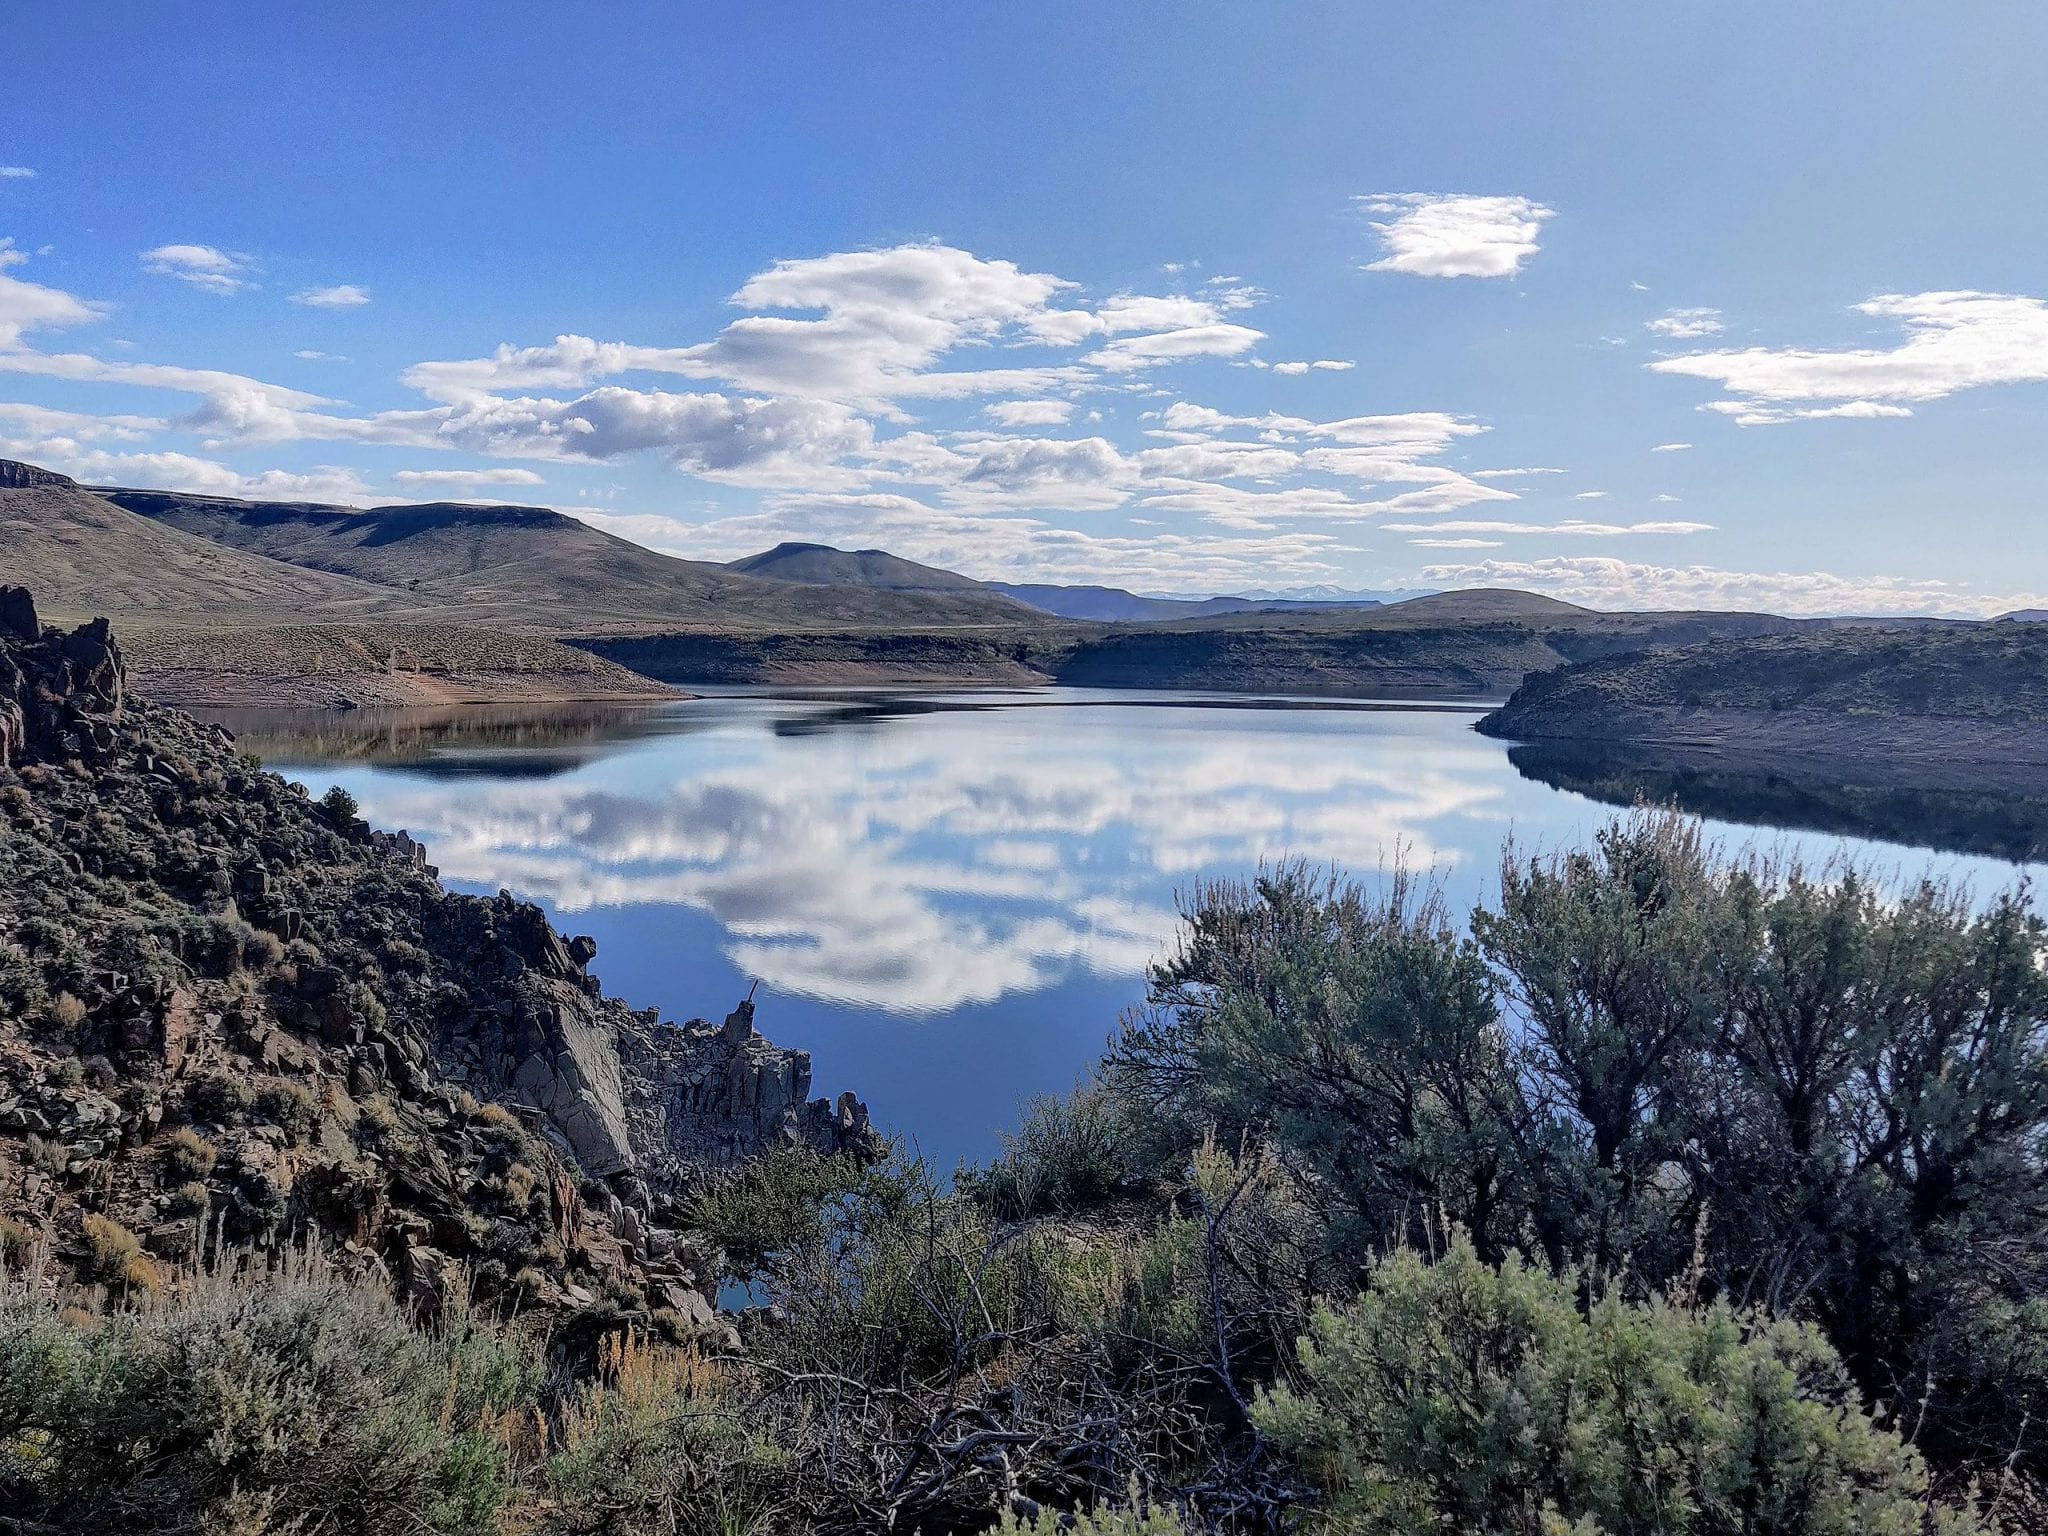 Blue Mesa Reservoir is one of three upper basin reservoirs scheduled to release additional water into the Colorado River system.